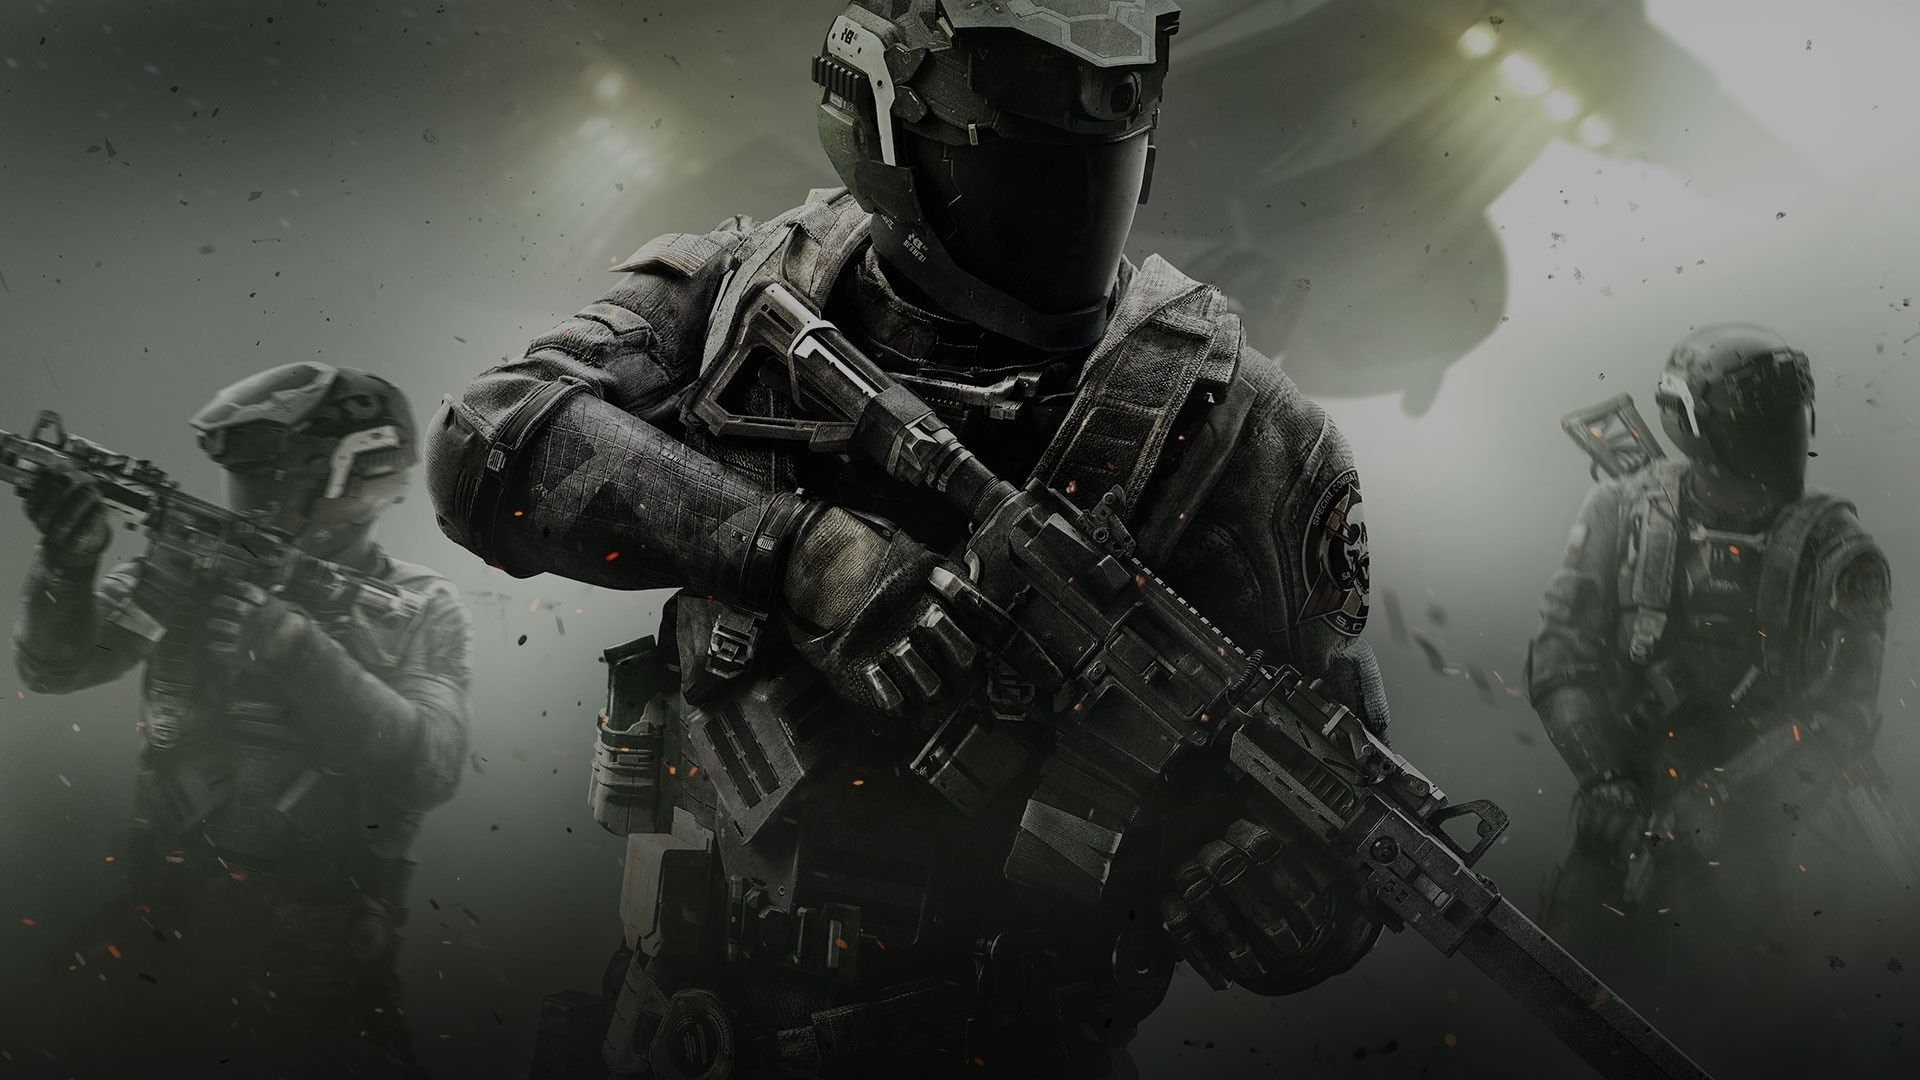 Cod Computer Backgrounds Wallpaper Call Of Duty Infinite Call Of Duty Call Of Duty Black